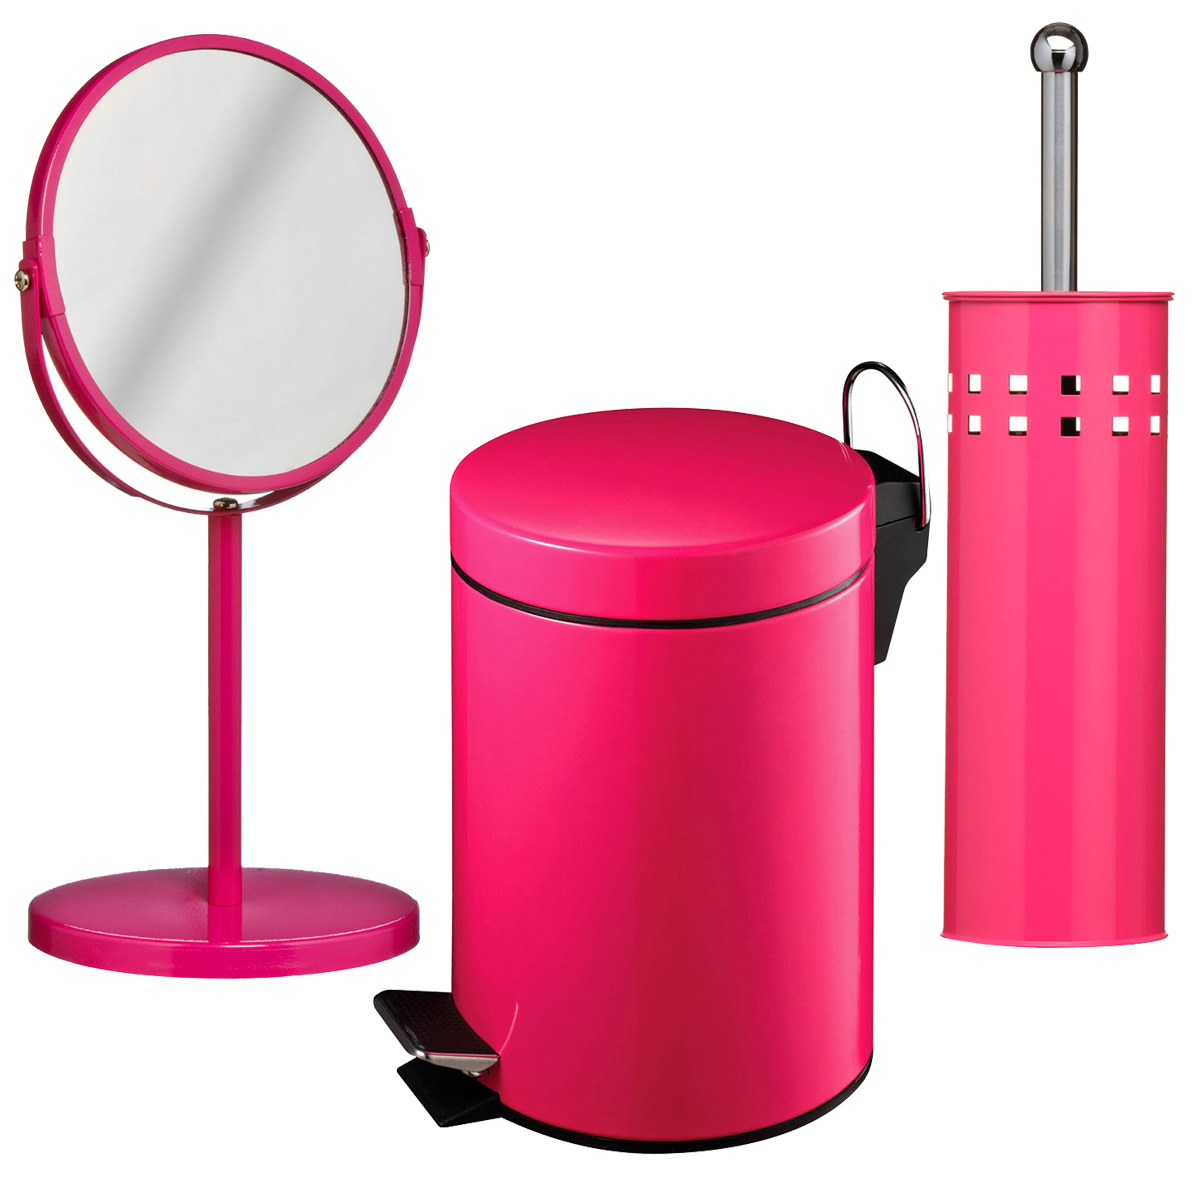 New premier hot pink 3 litre bathroom pedal bin toilet for Pink toilet accessories